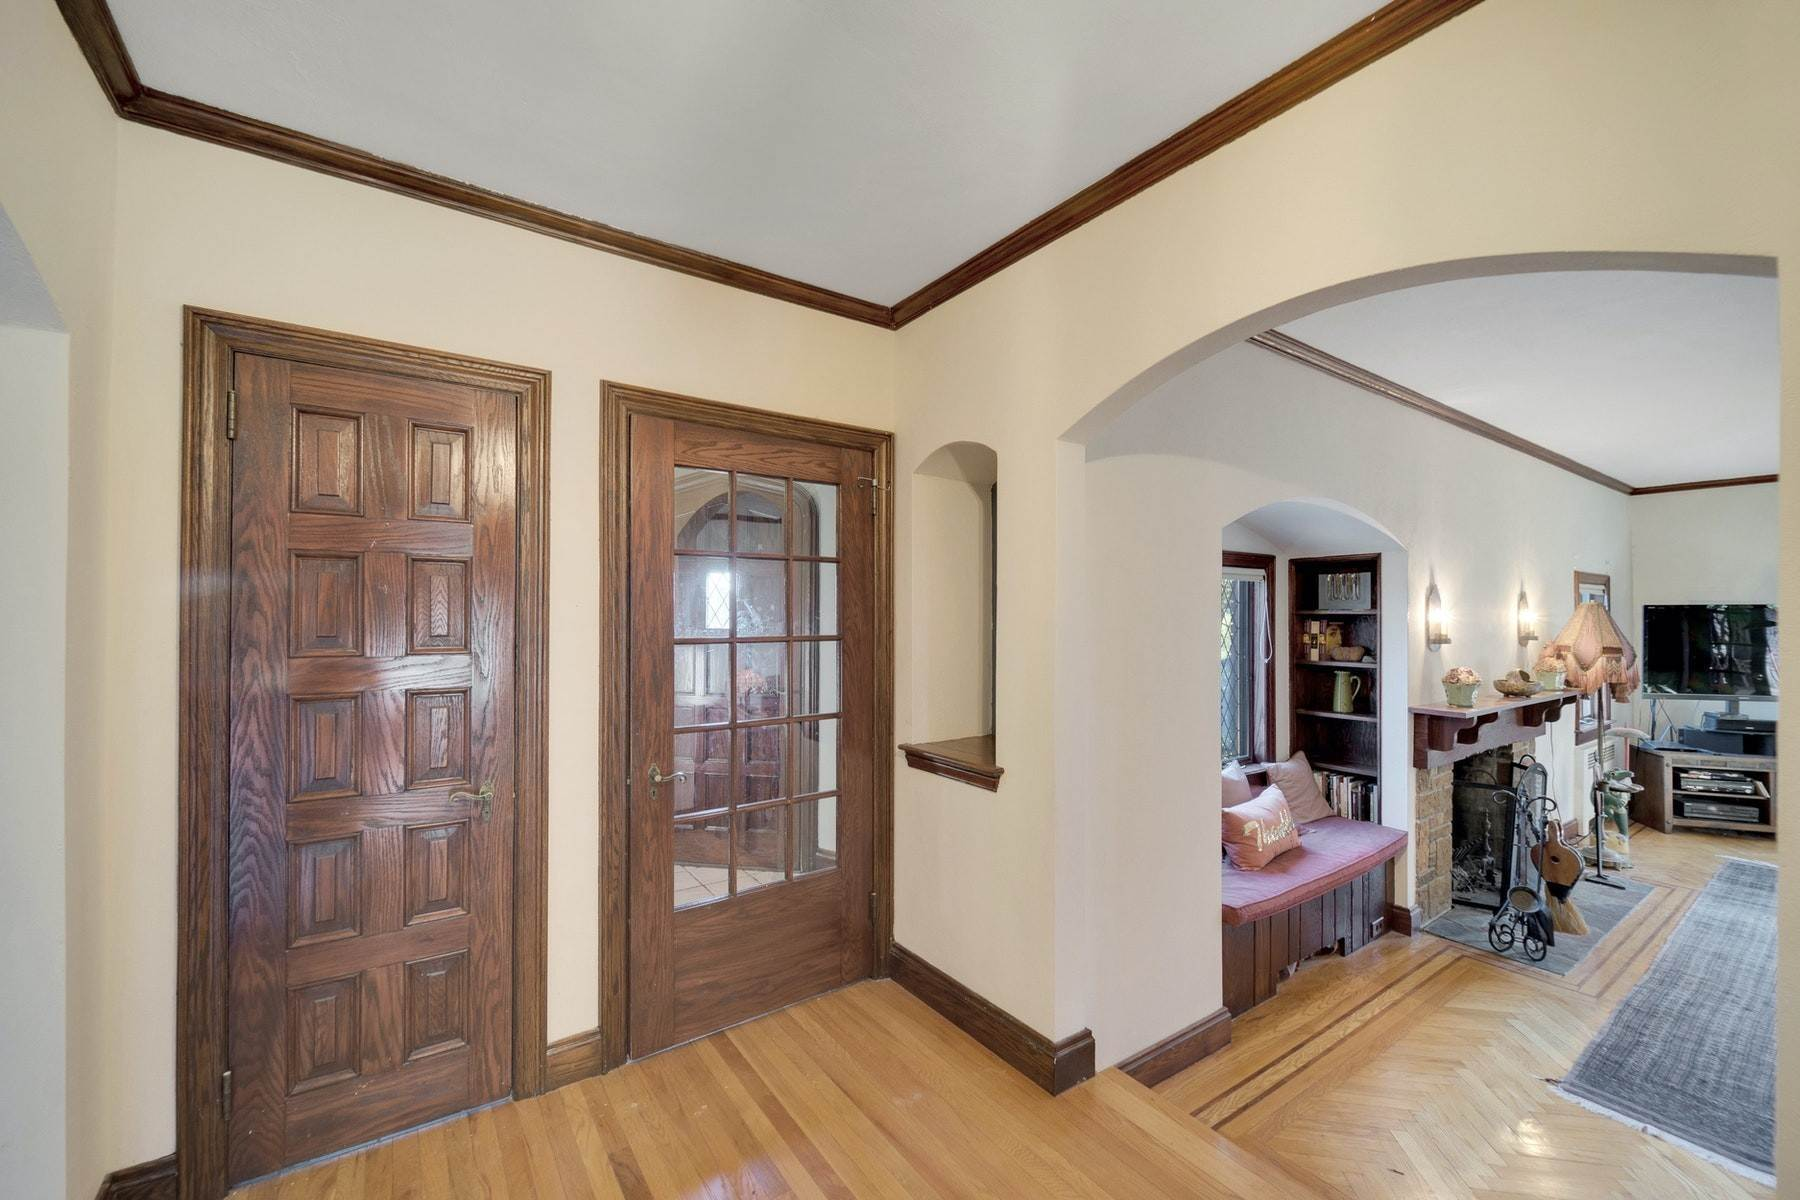 7. Single Family Homes for Sale at Village Brick Tudor 17 Wisner Terrace Goshen, New York 10924 United States